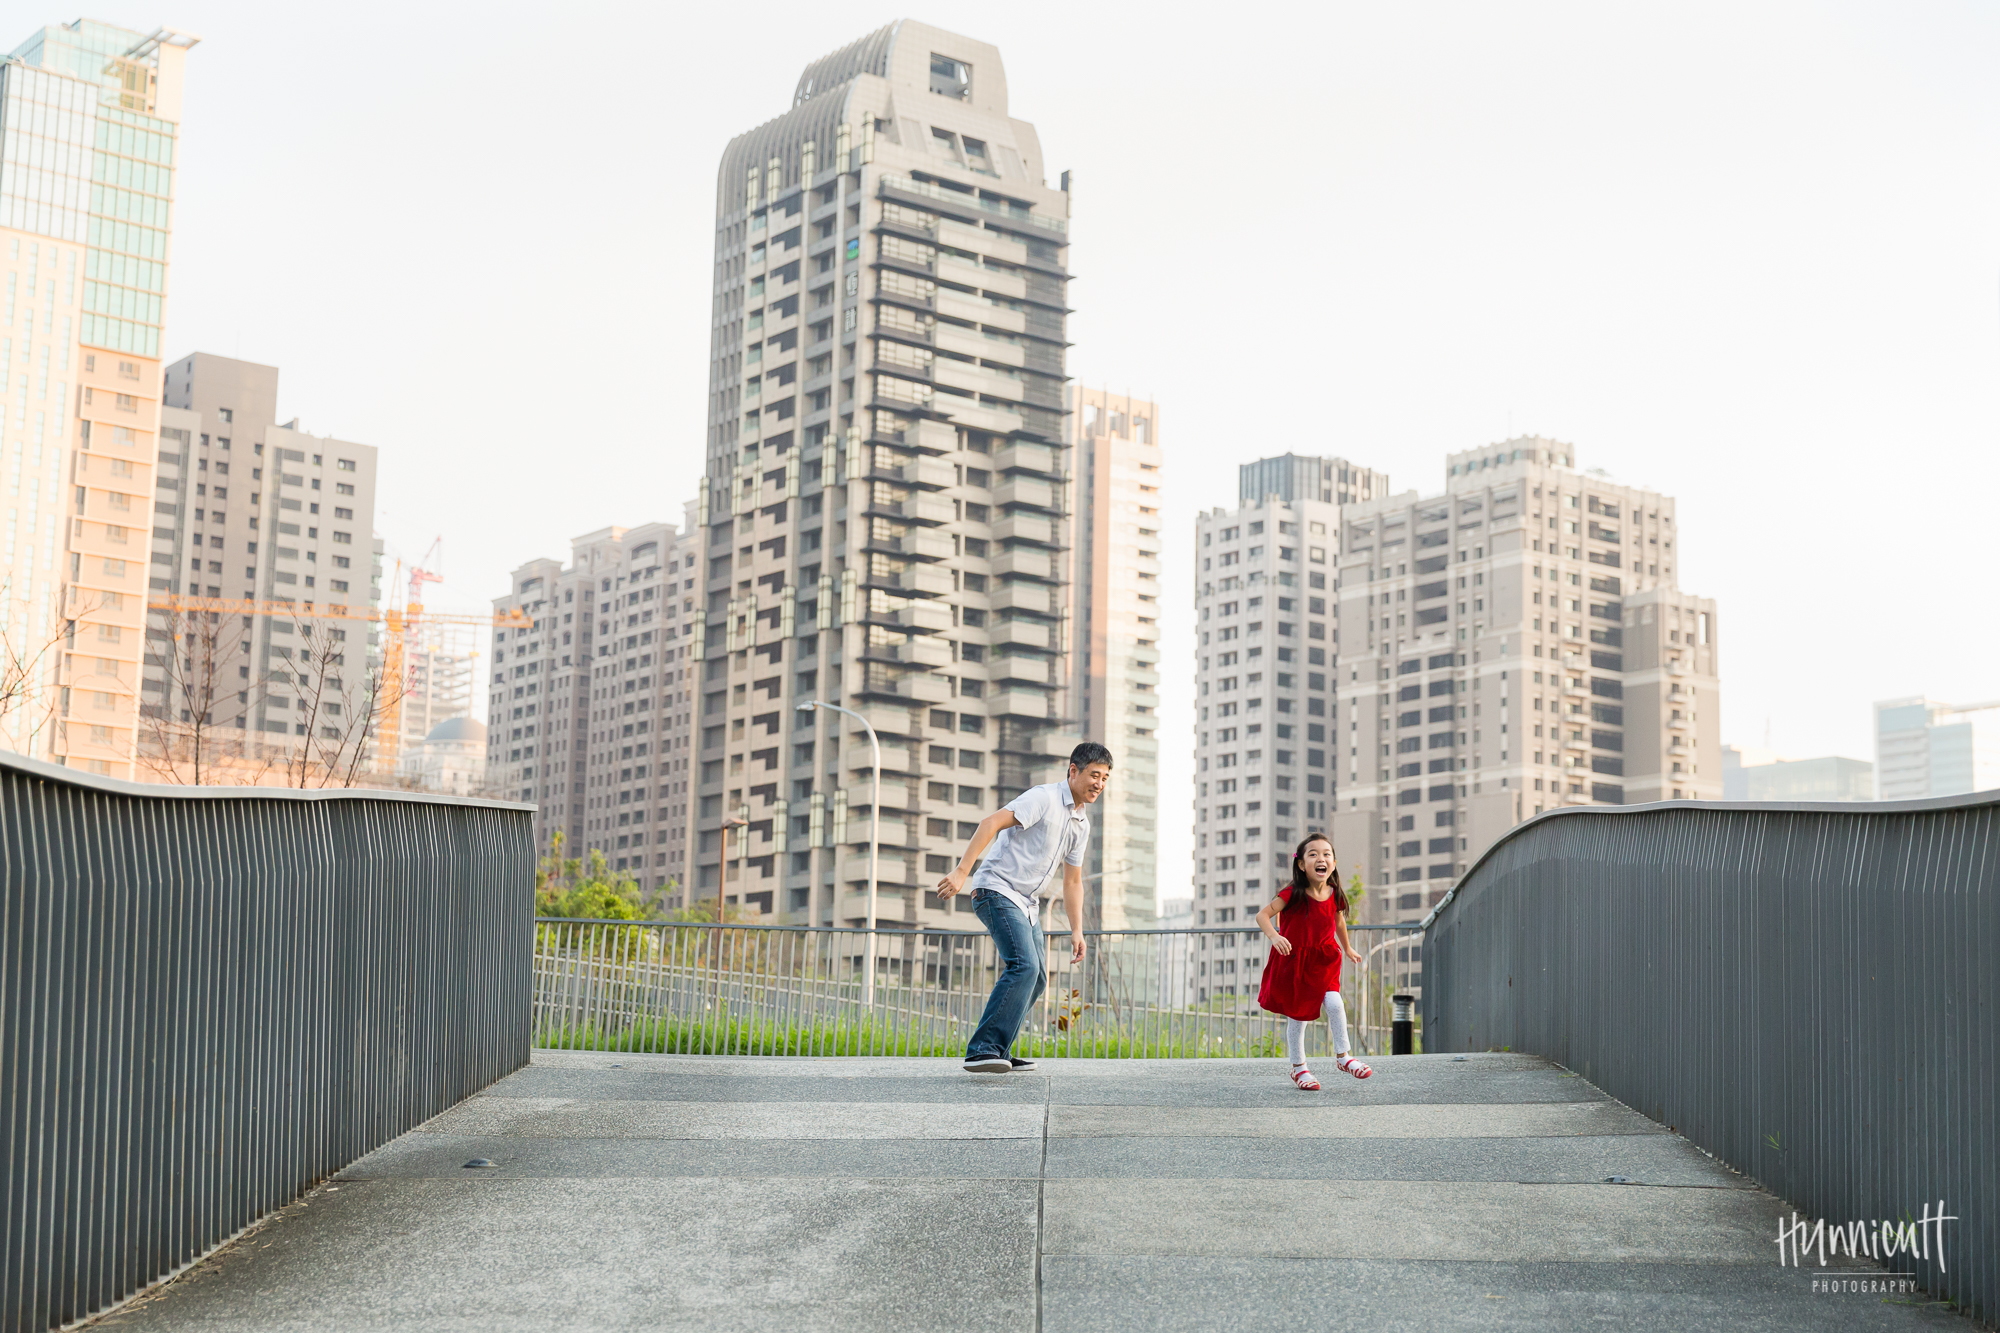 Outdoor-Explore-Neighborhood-Modern-Urban-GoldenHour-Lifestyle-Family-Photography-Taichung-Taiwan-Rebecca-Hunnicutt-Farren-Hunnicutt-Photography-30